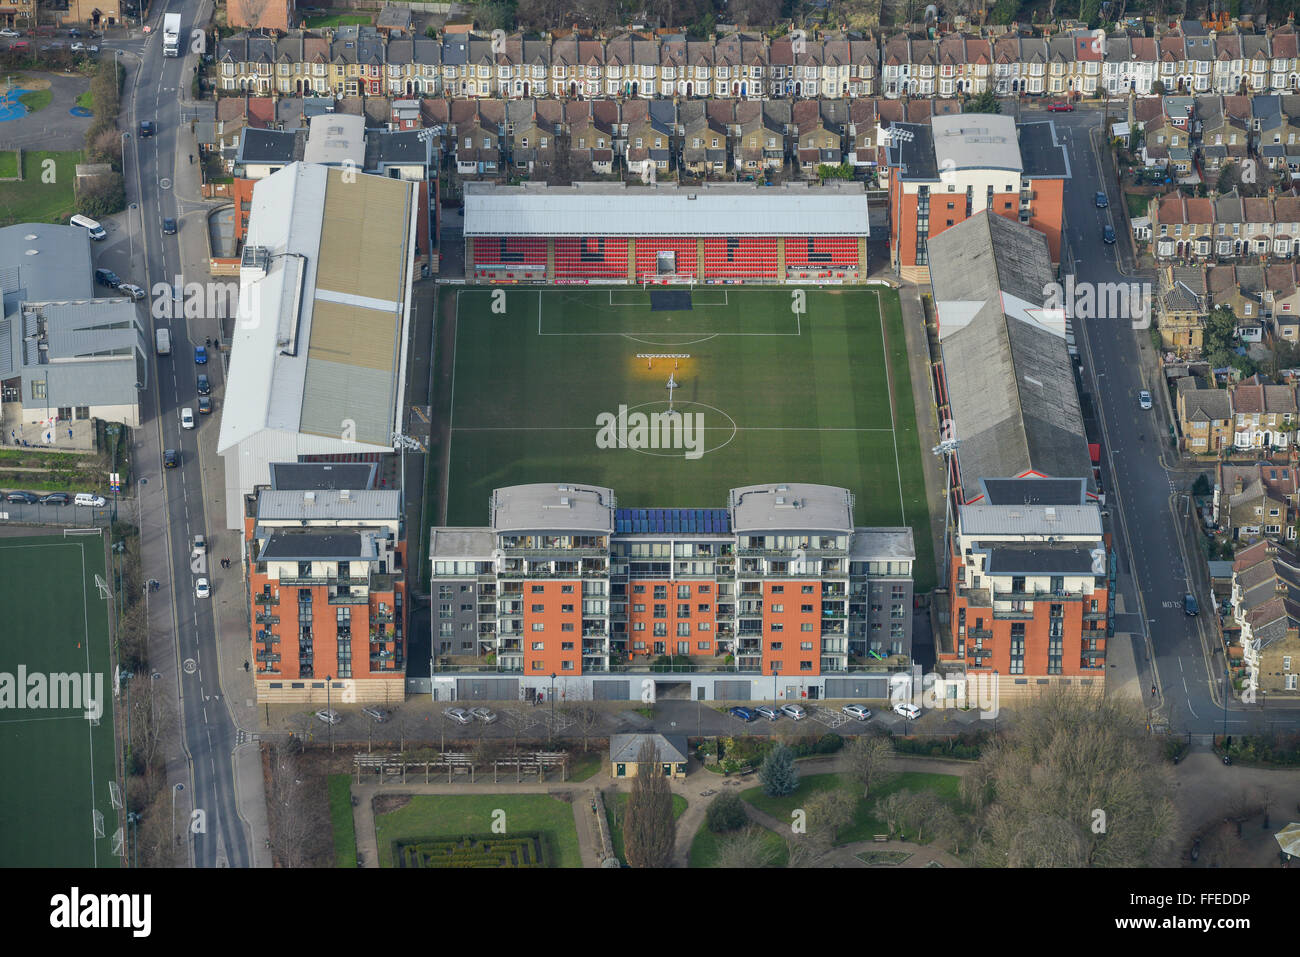 An aerial view of Brisbane Road. The home of Leyton Orient FC - Stock Image